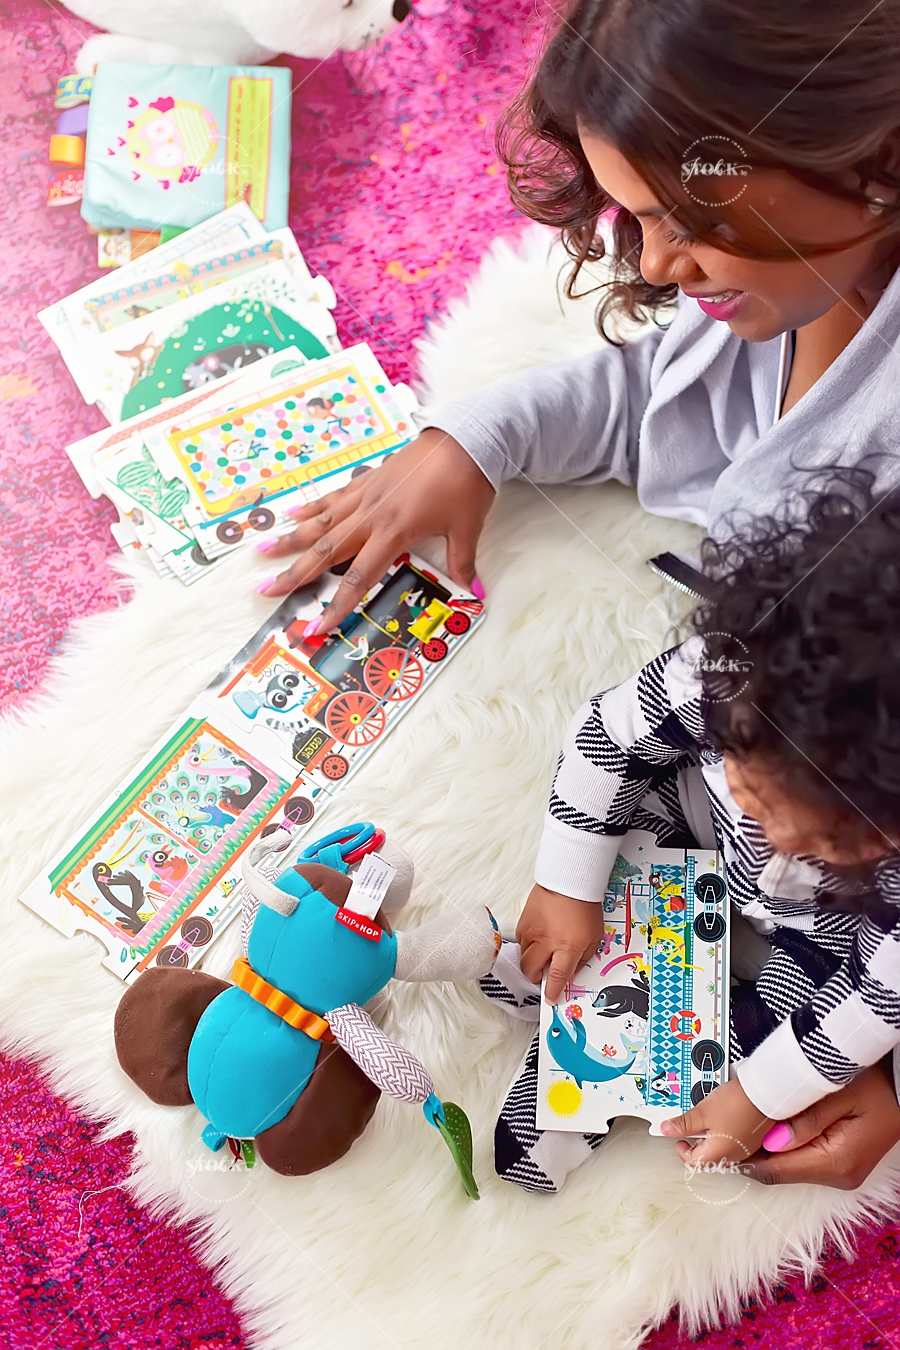 mother and baby playing with books and toys